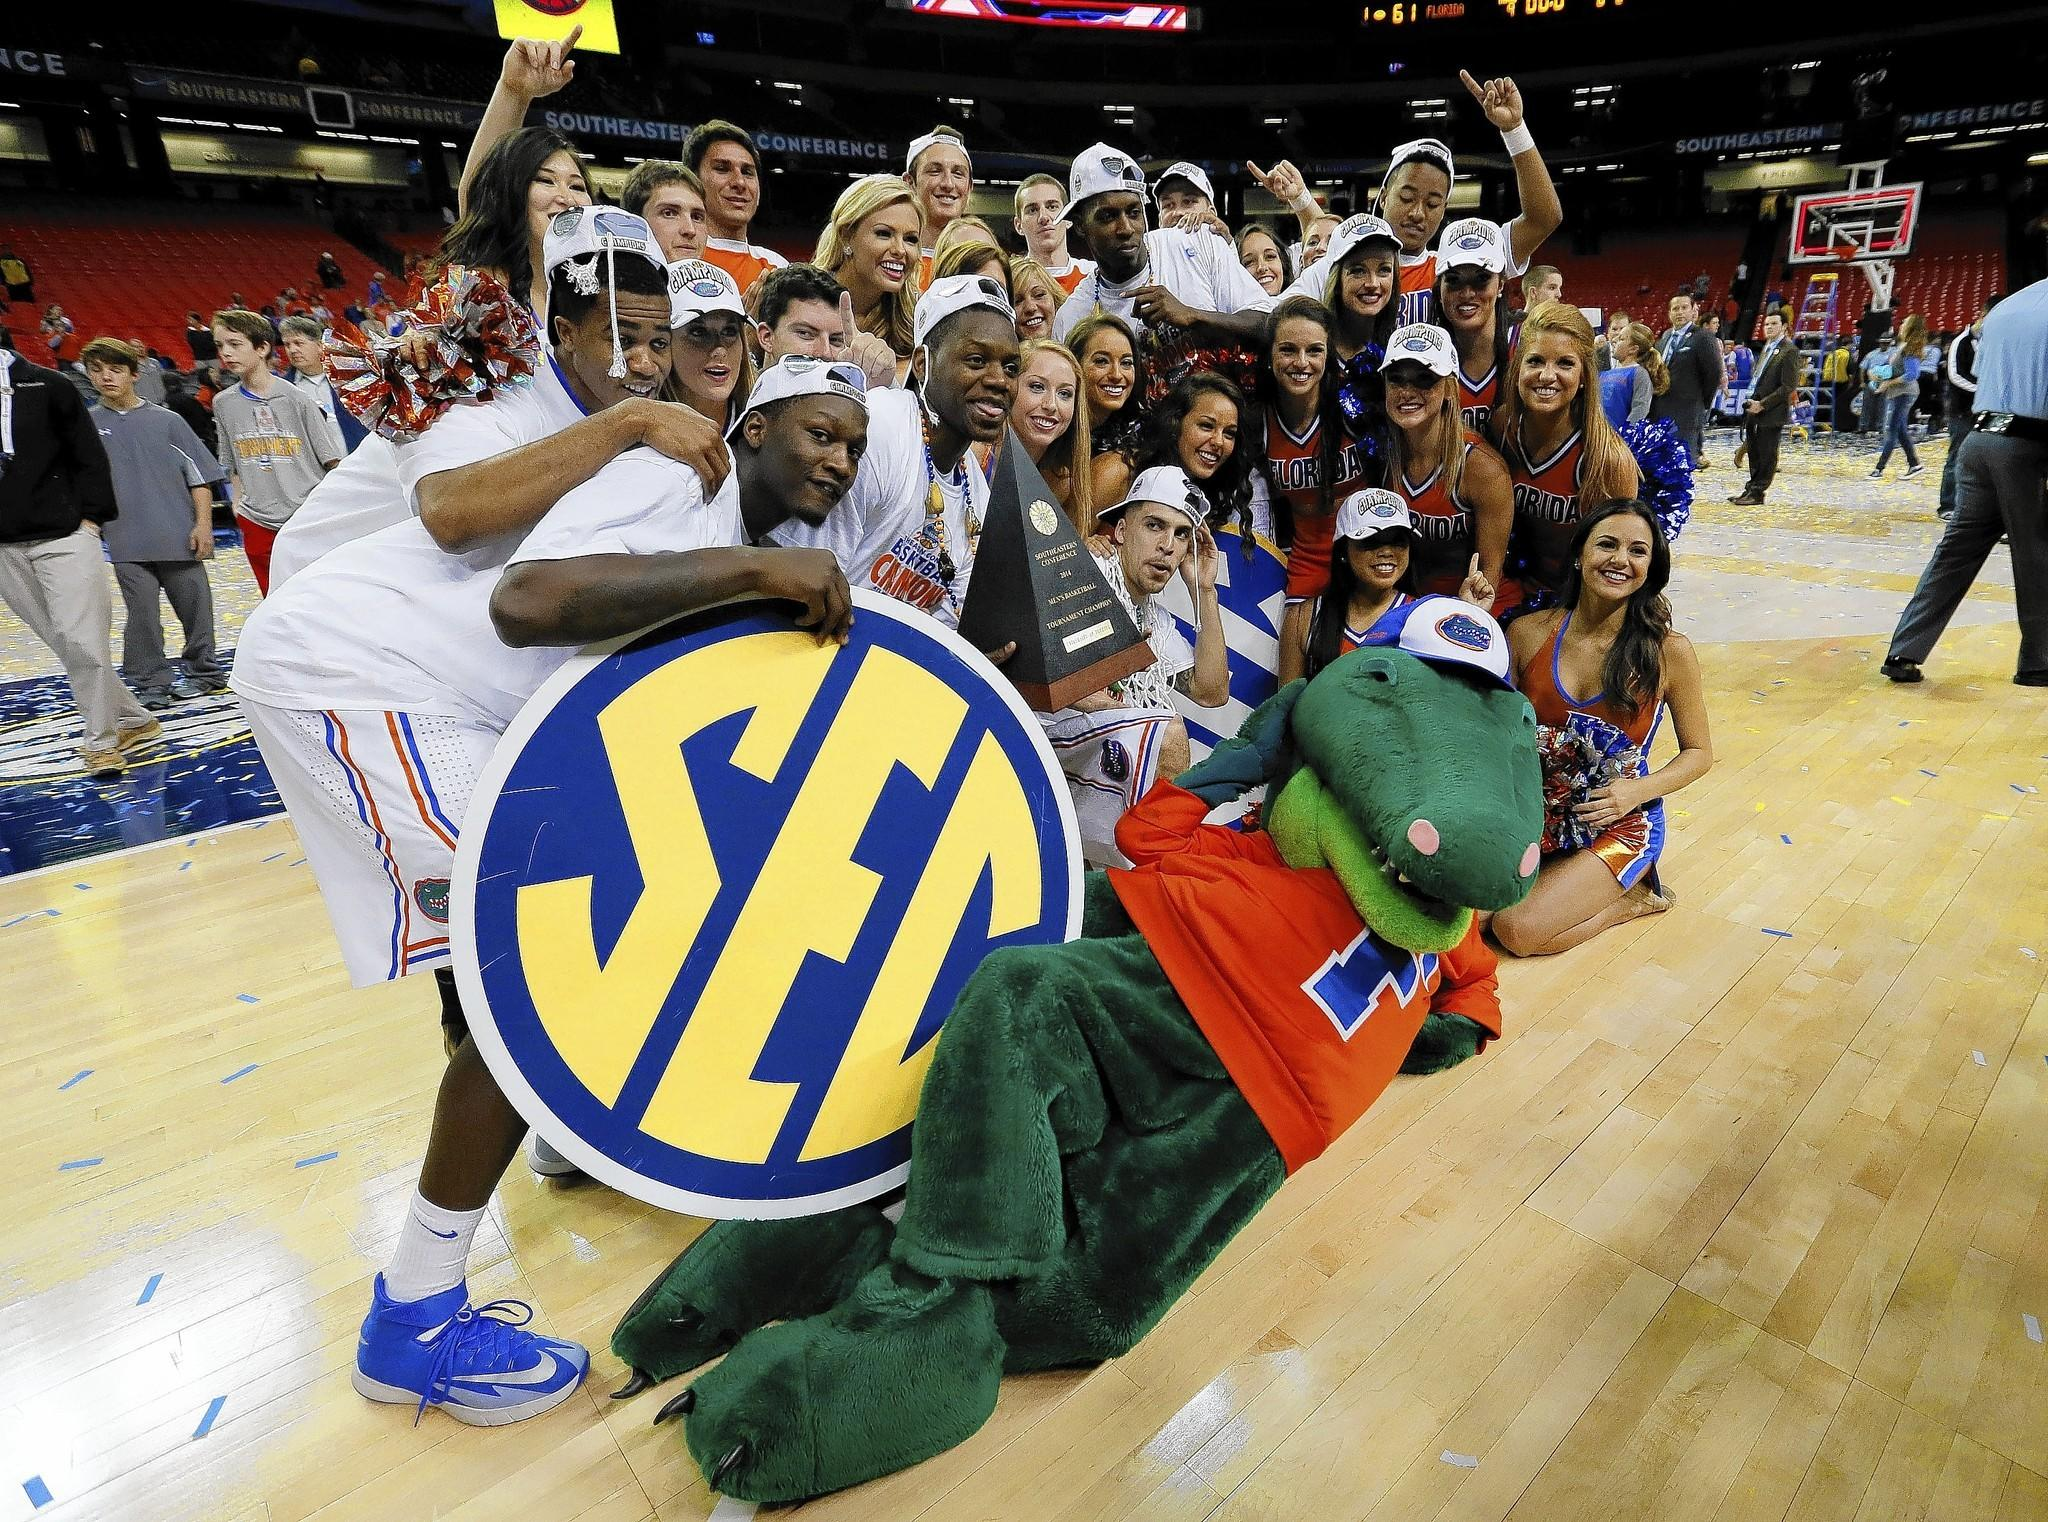 ATLANTA, GA - MARCH 16: The Florida Gators celebrate their 61 to 60 win over the Kentucky Wildcats in the Championship game of the 2014 Men's SEC Basketball Tournament at Georgia Dome on March 16, 2014 in Atlanta, Georgia.